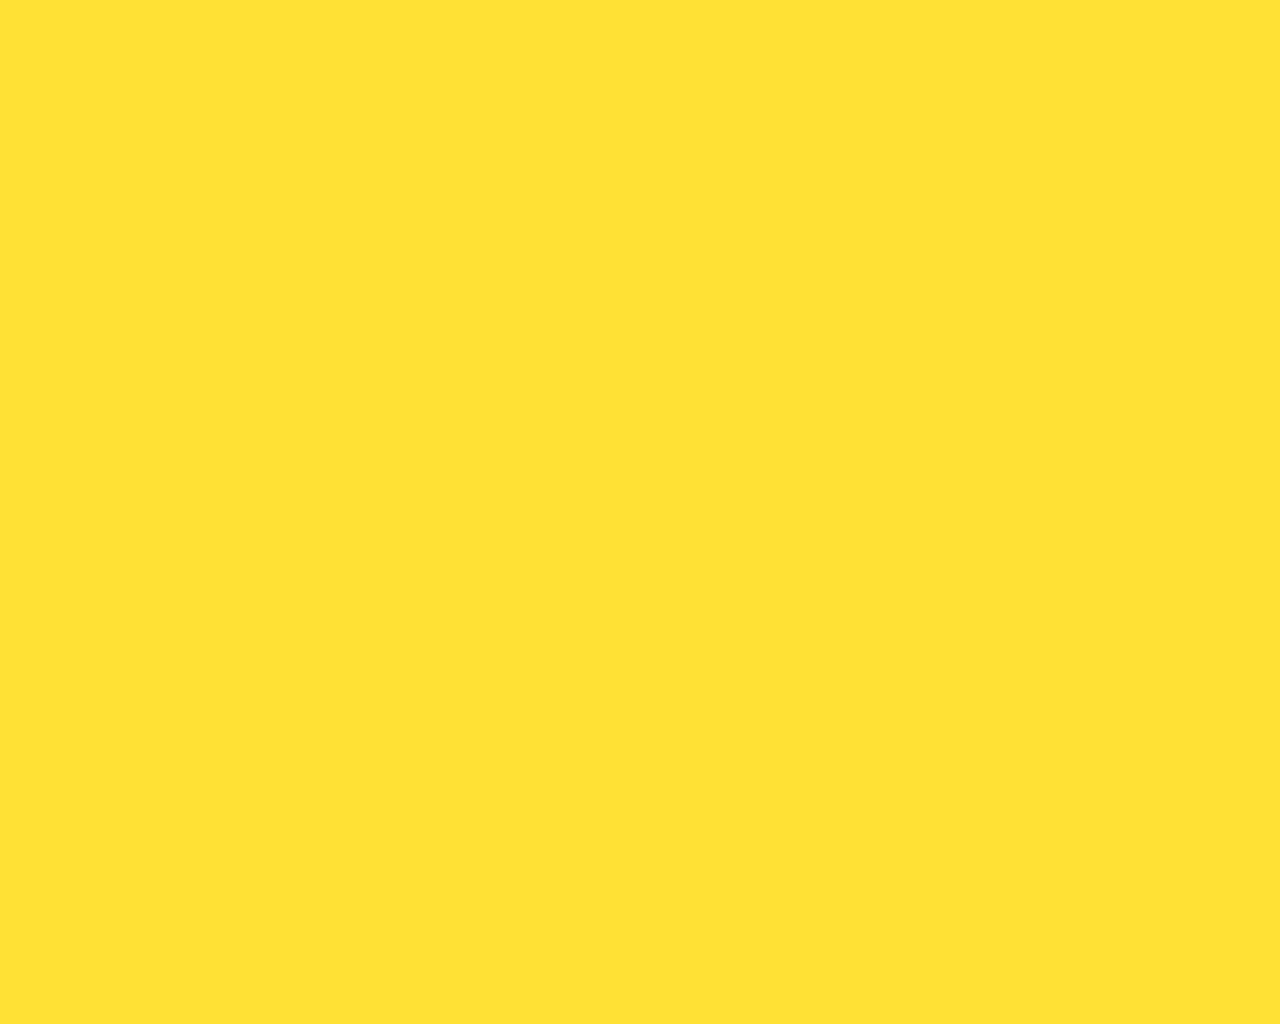 1280x1024 Banana Yellow Solid Color Background